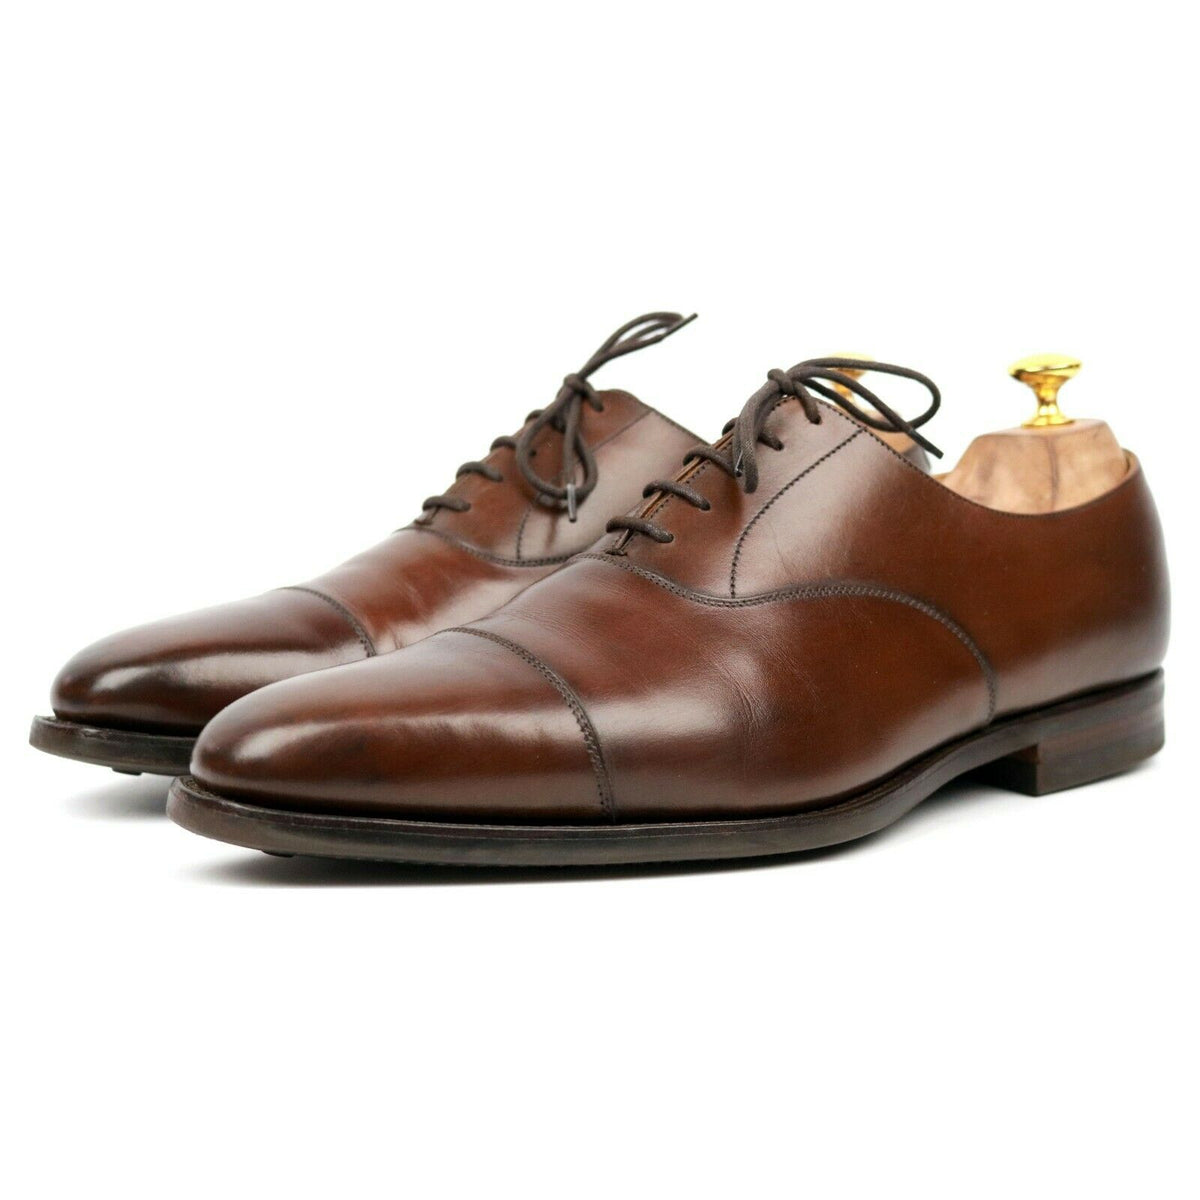 Crockett & Jones 'Hallam' Brown Leather Oxford UK 10 E